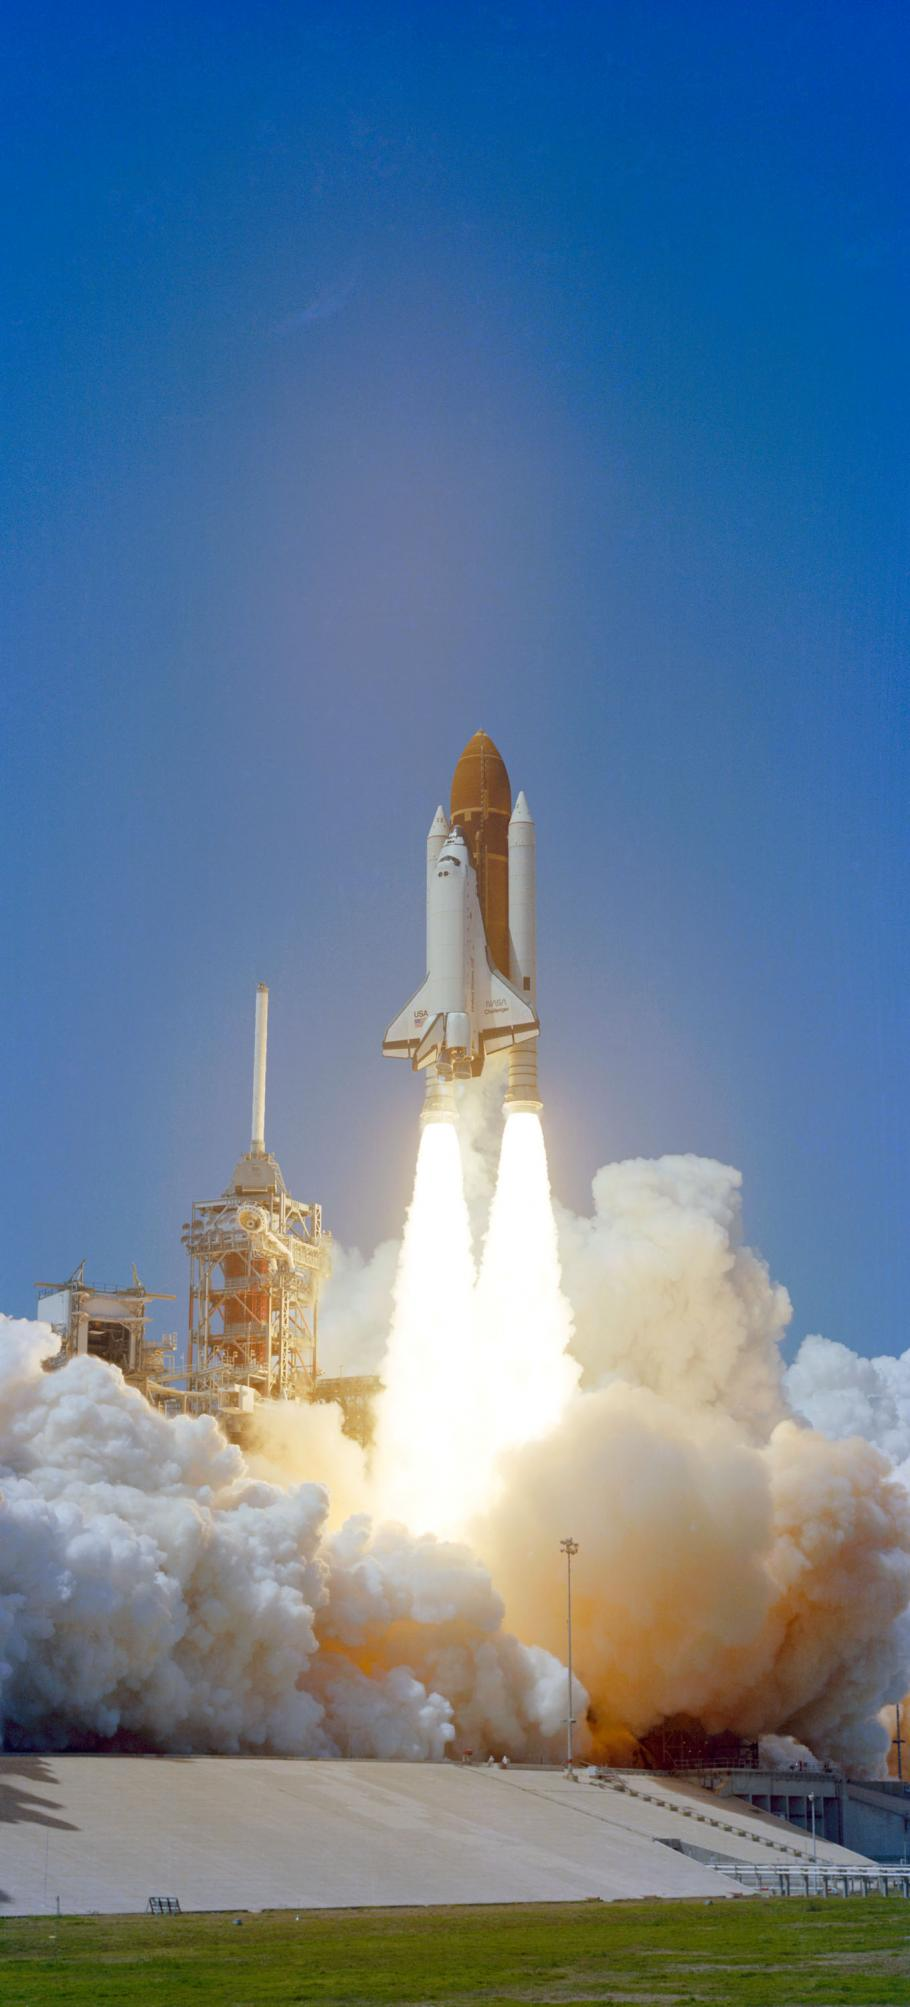 The Space Shuttle Challenger's taking off from the lanuch pad for its first launch, 1983.